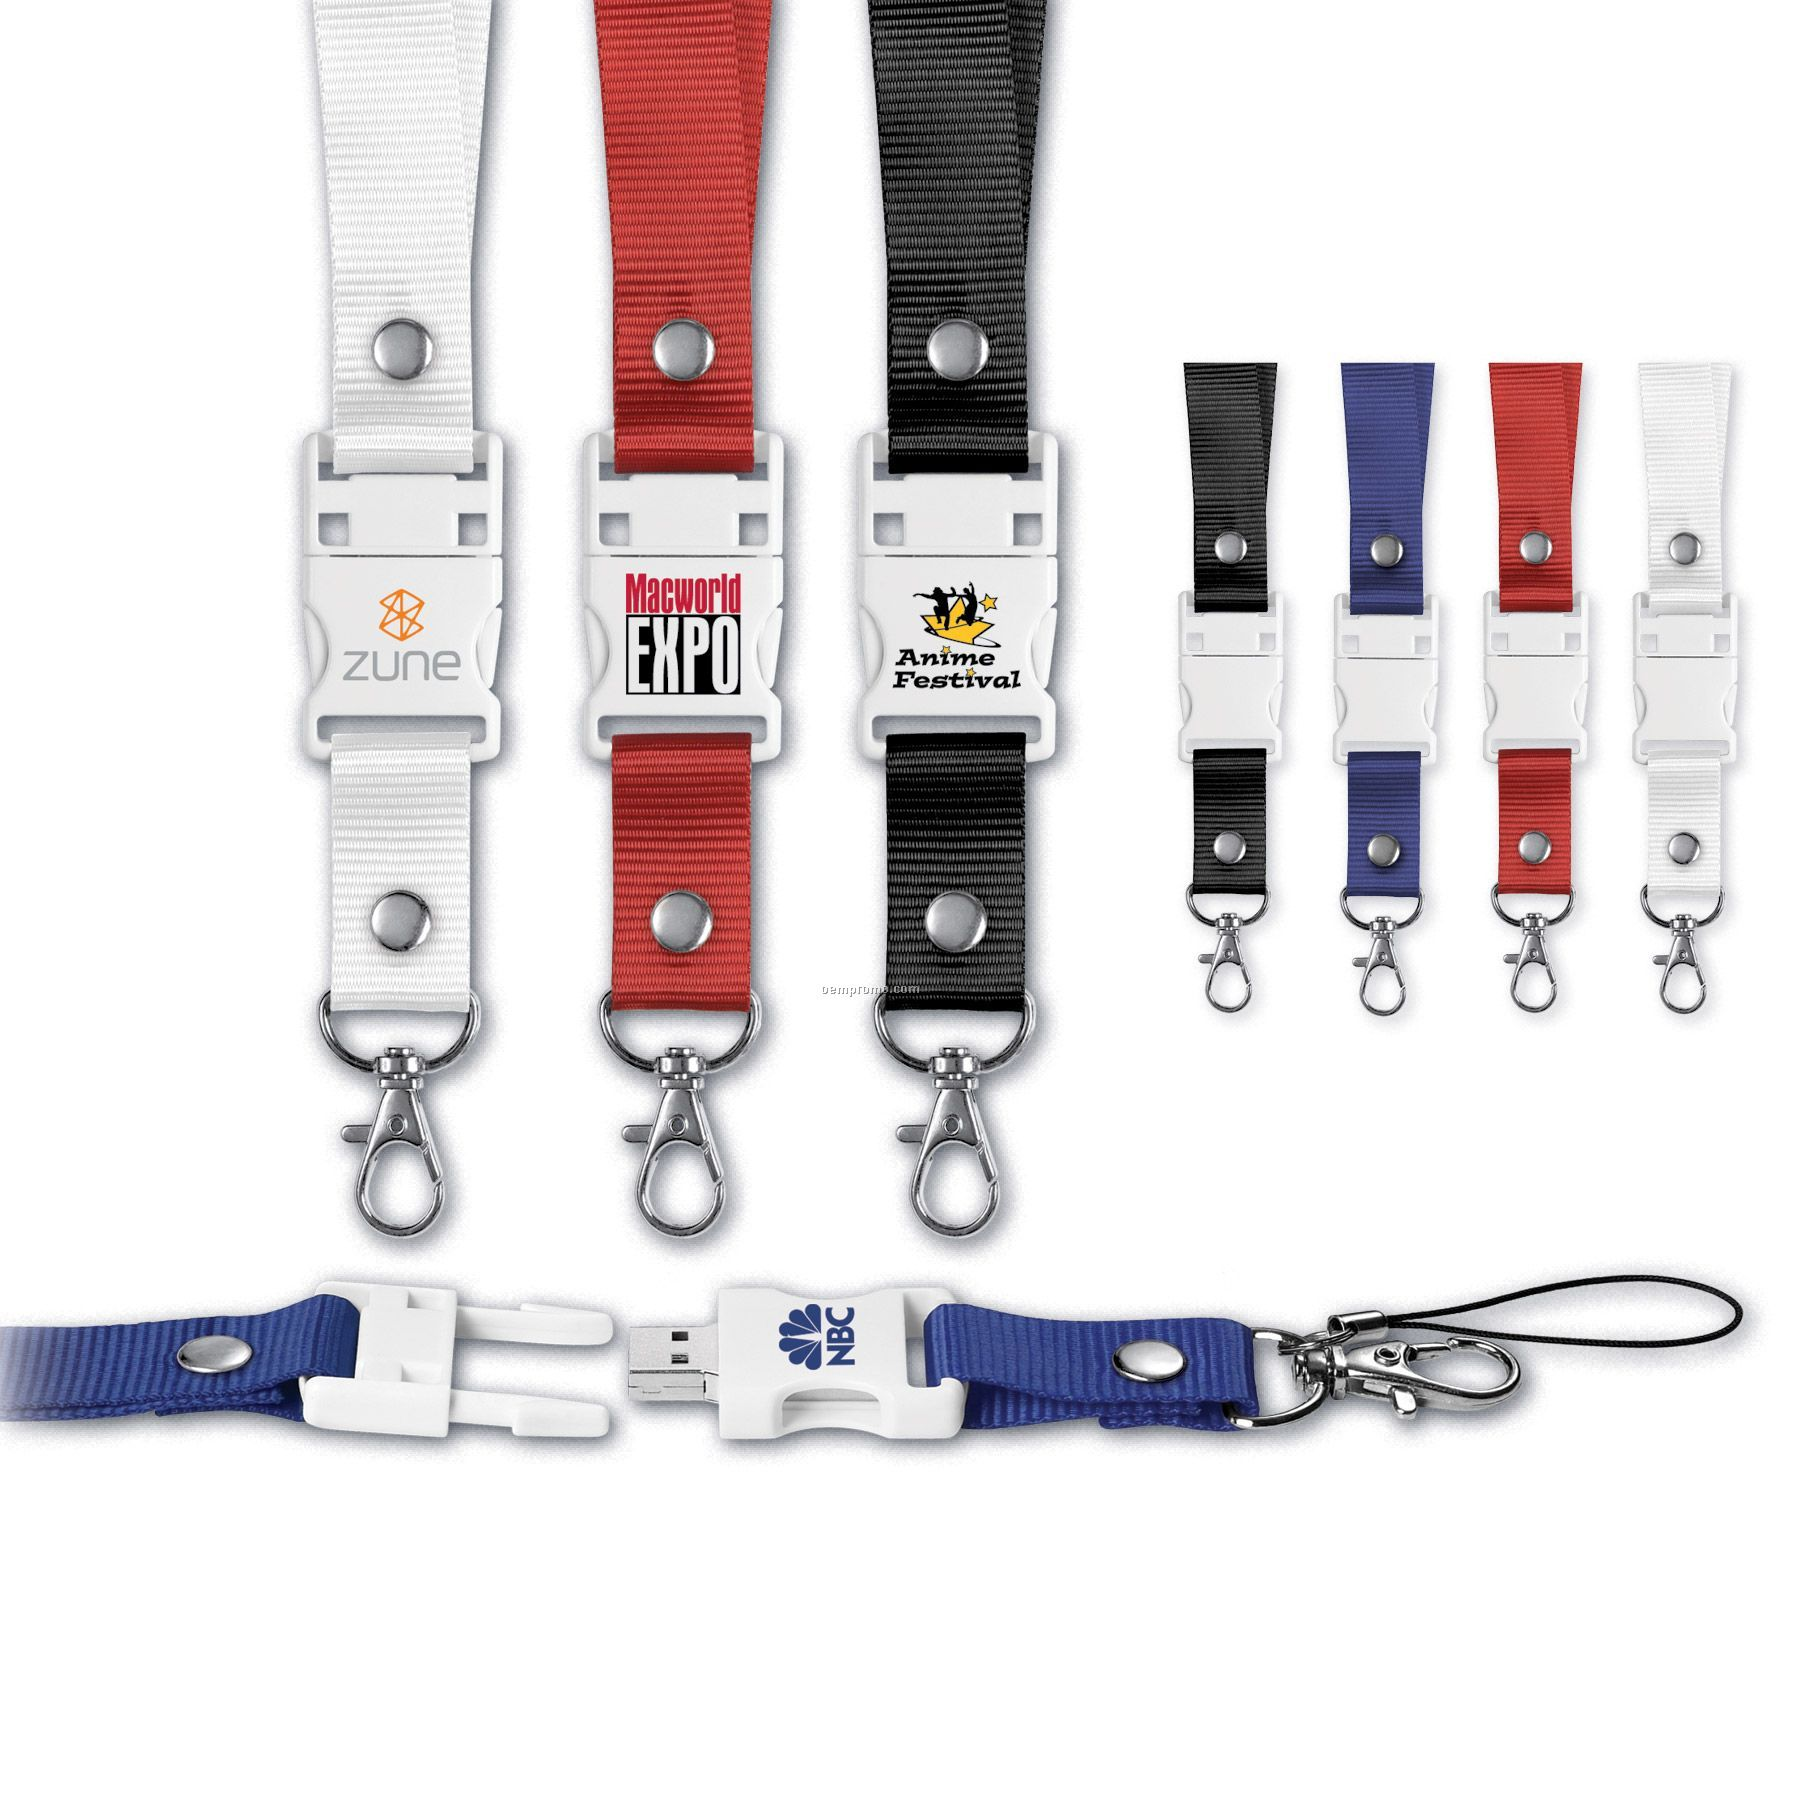 USB 2.0 Lanyard Flash Drive Ld